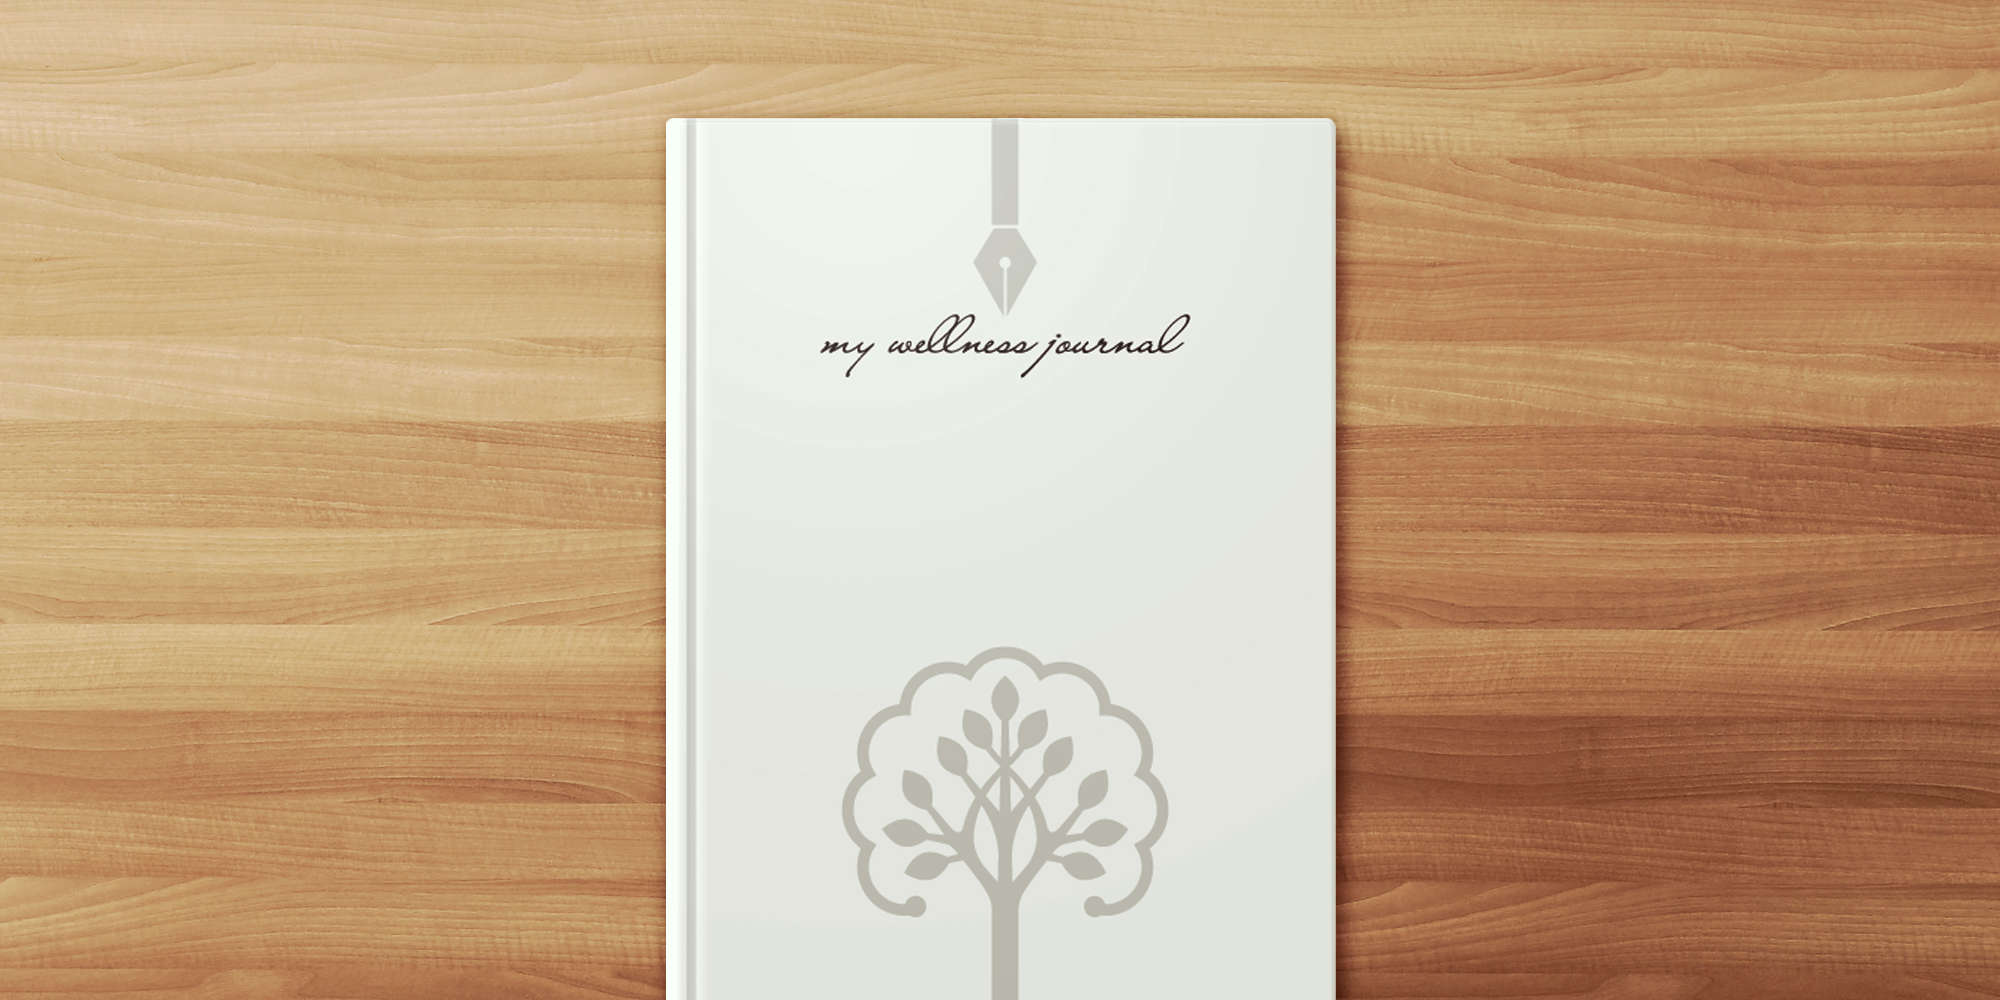 This variation of My Wellness Journal comes in a white hardcover binding that's both stain-resistant and elegant.